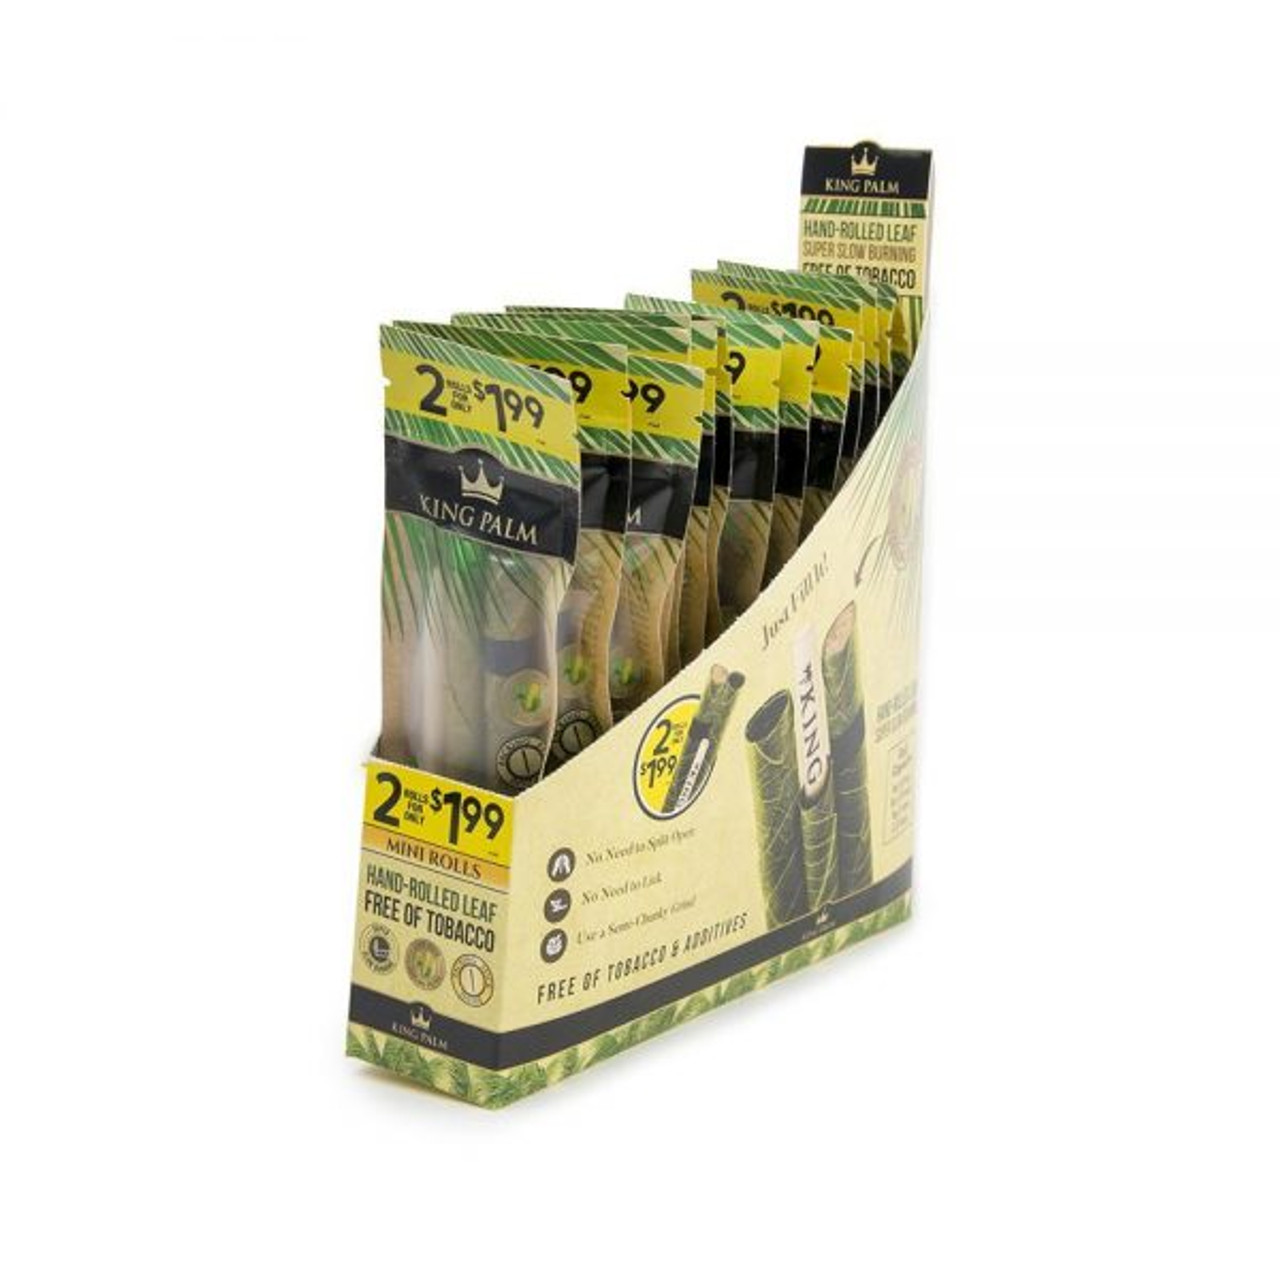 King Palm Mini 2pk - Pre-Price 1.99 - Display of 20